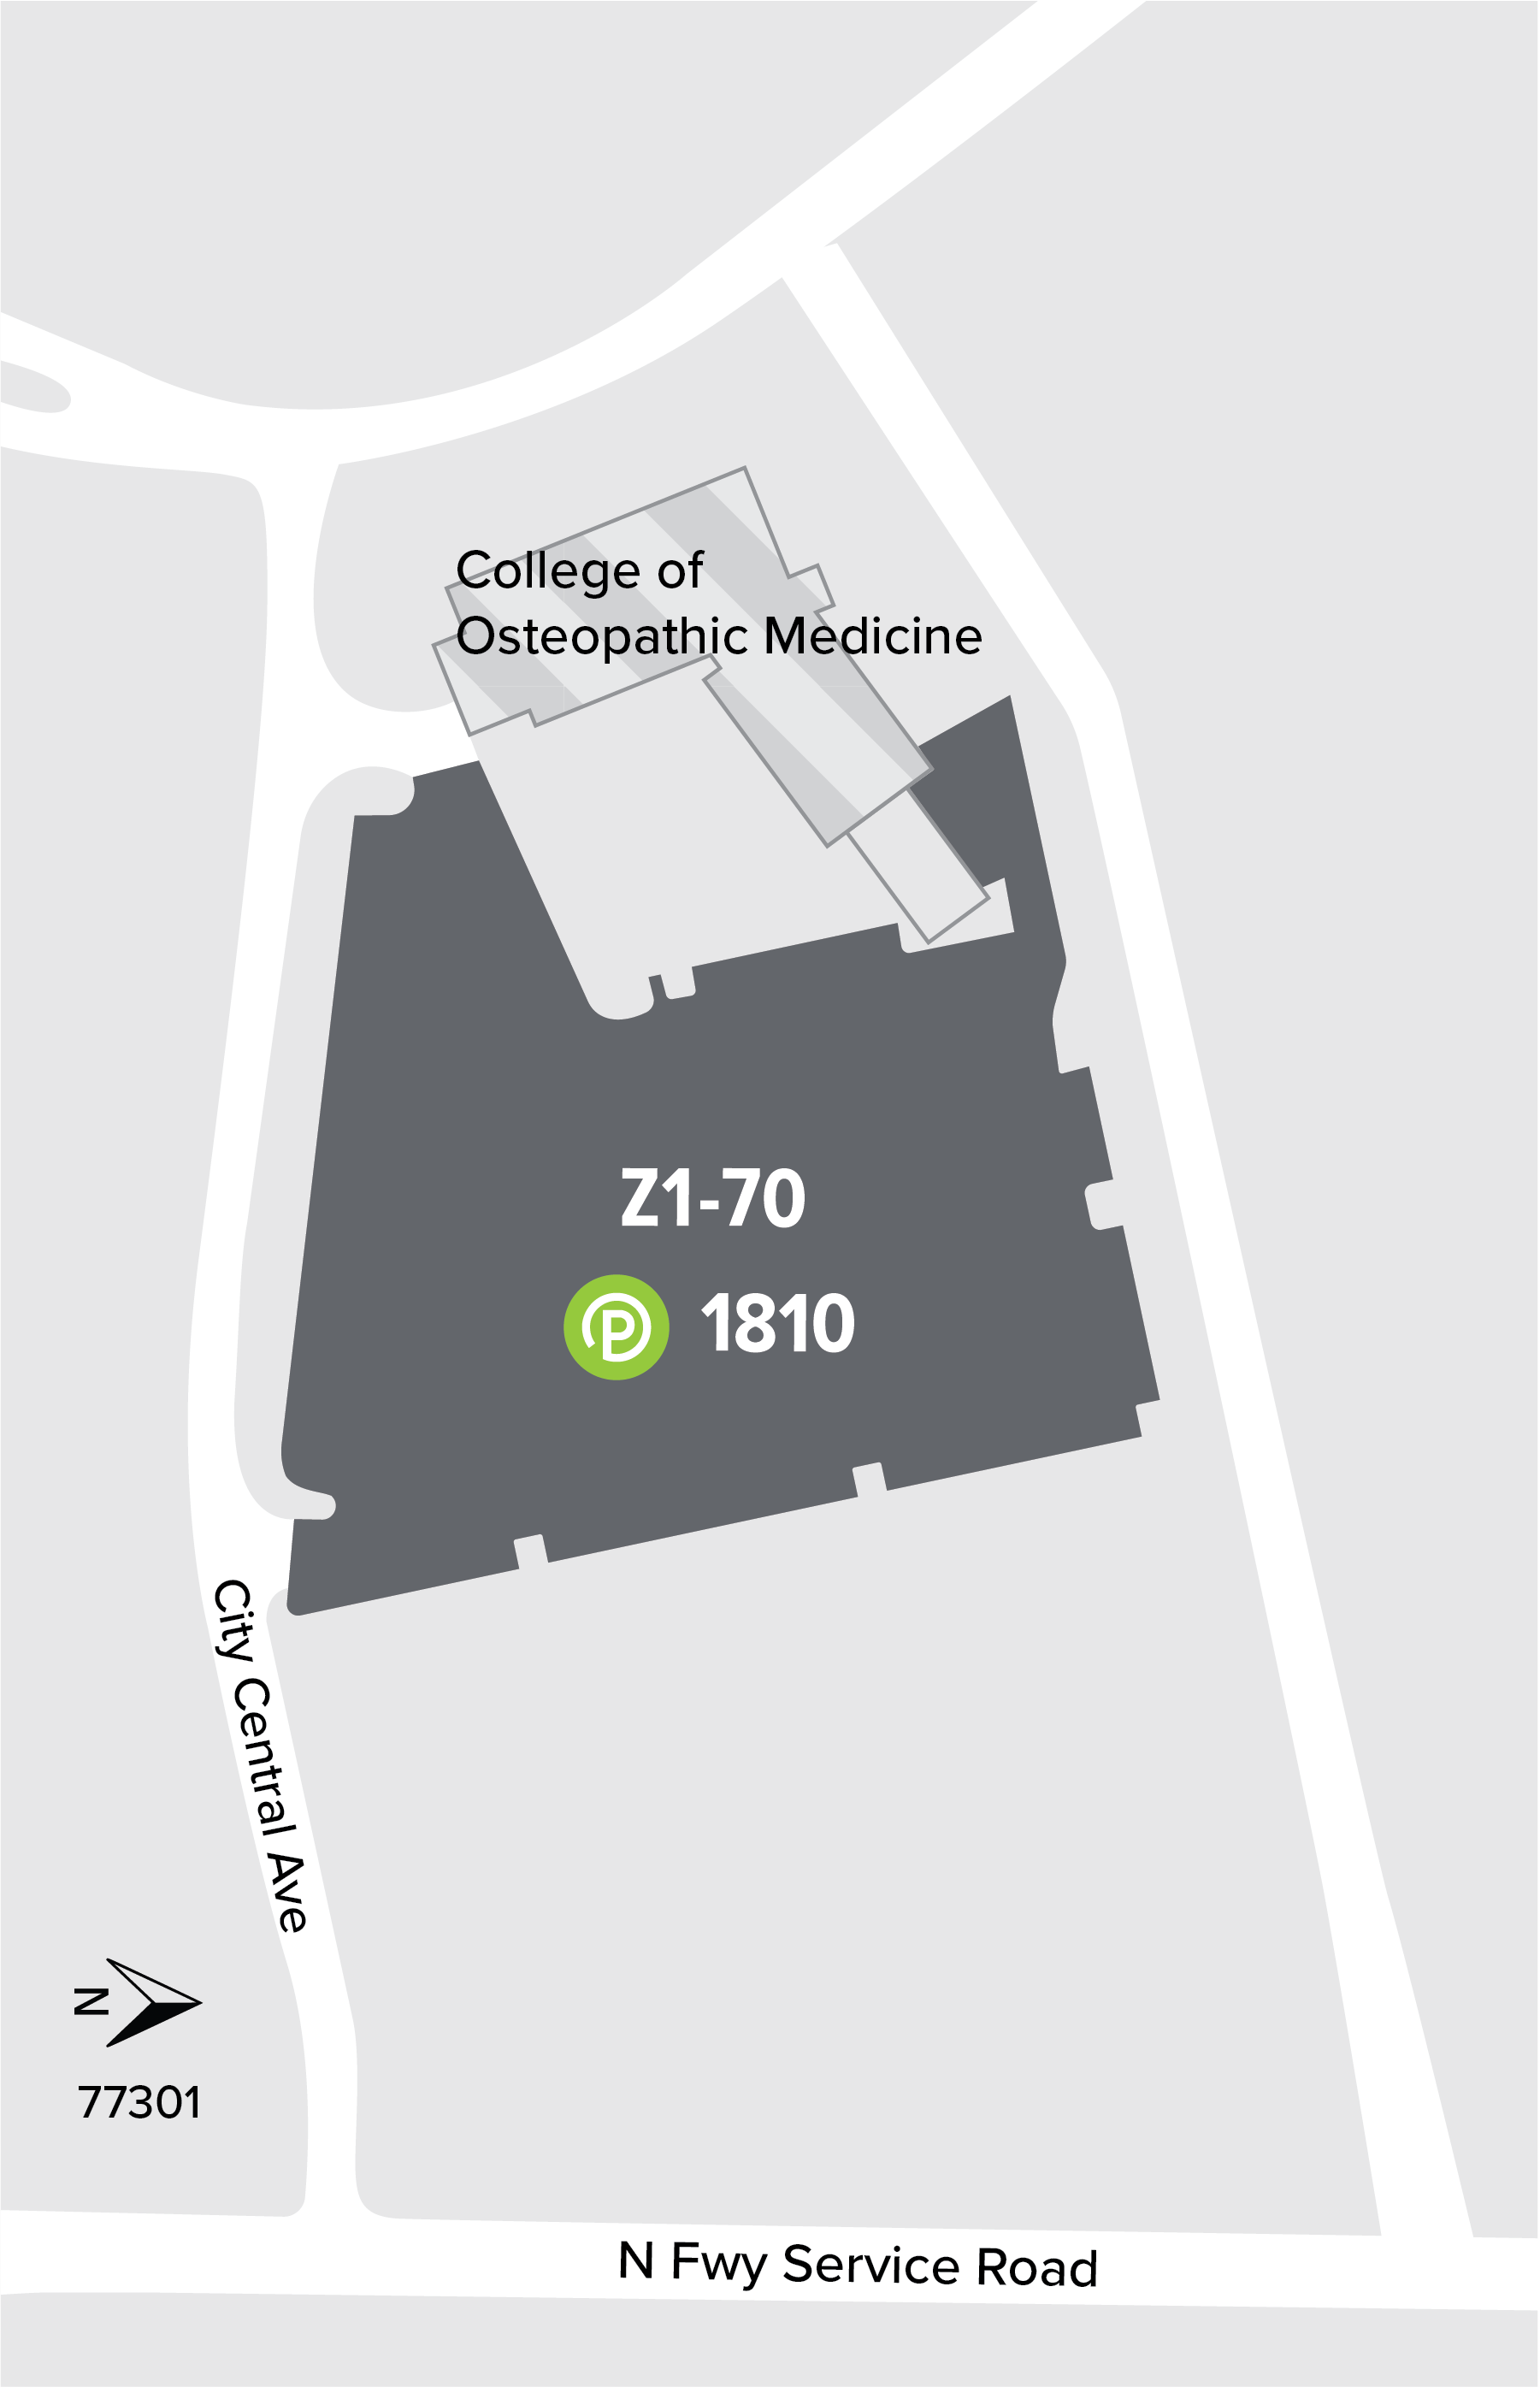 College of Osteopathic Medicine map